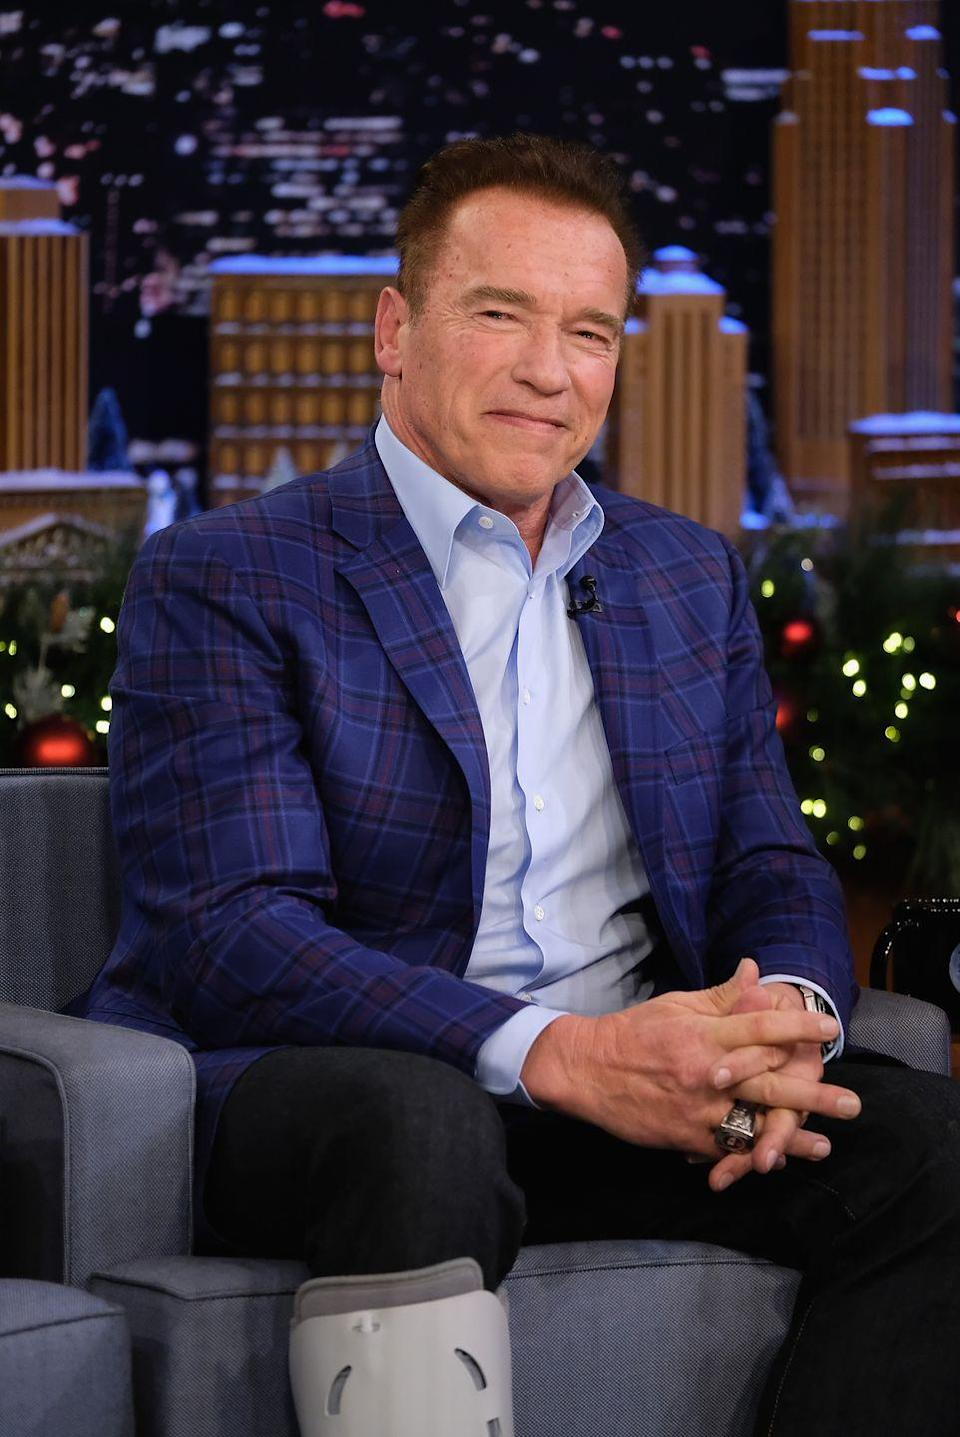 "<p>Schwarzenegger starred in the 1985 film <a href=""http://www.eonline.com/photos/15445/celebs-who-hate-their-own-movies/469682"" rel=""nofollow noopener"" target=""_blank"" data-ylk=""slk:revealing"" class=""link rapid-noclick-resp"">revealing</a>,""It's the worst film I have ever made. When my kids get out of line, they're sent to their rooms and forced to watch <em>Red Sonja </em>10 times. I never had too much trouble with them.""</p>"